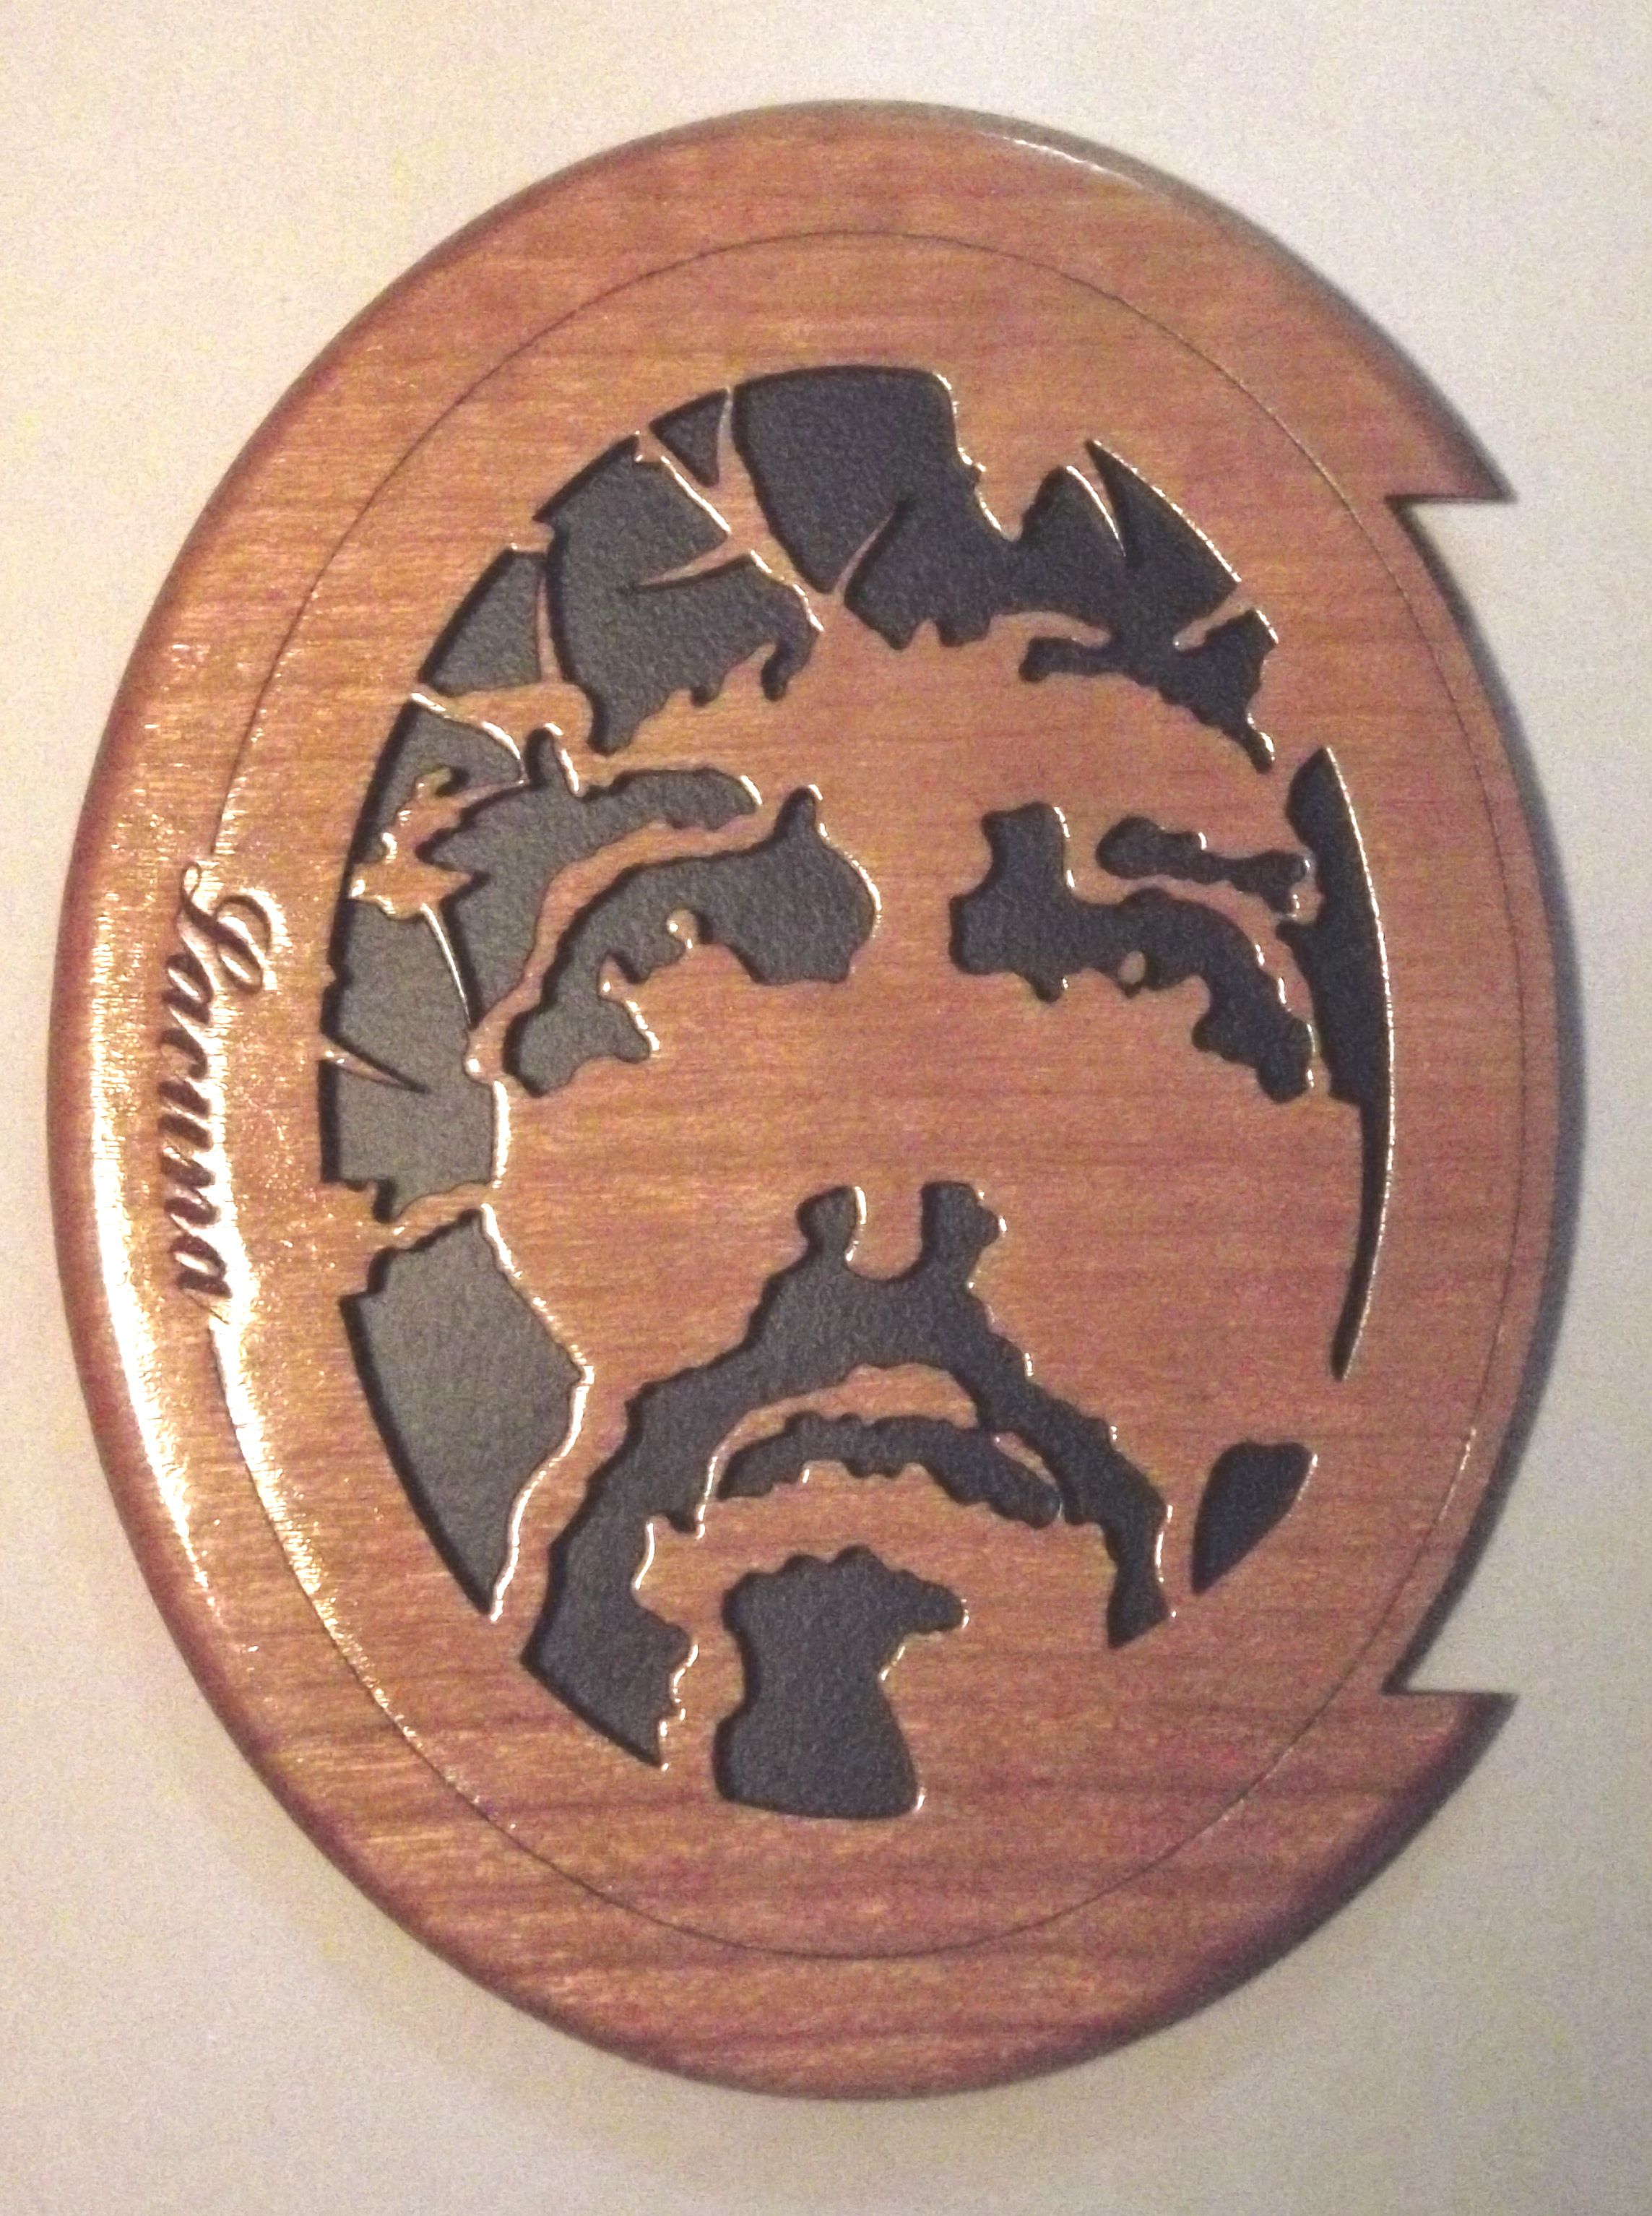 Soundhole Covers Lute Weird Shapes Acoustic Guitar Cake